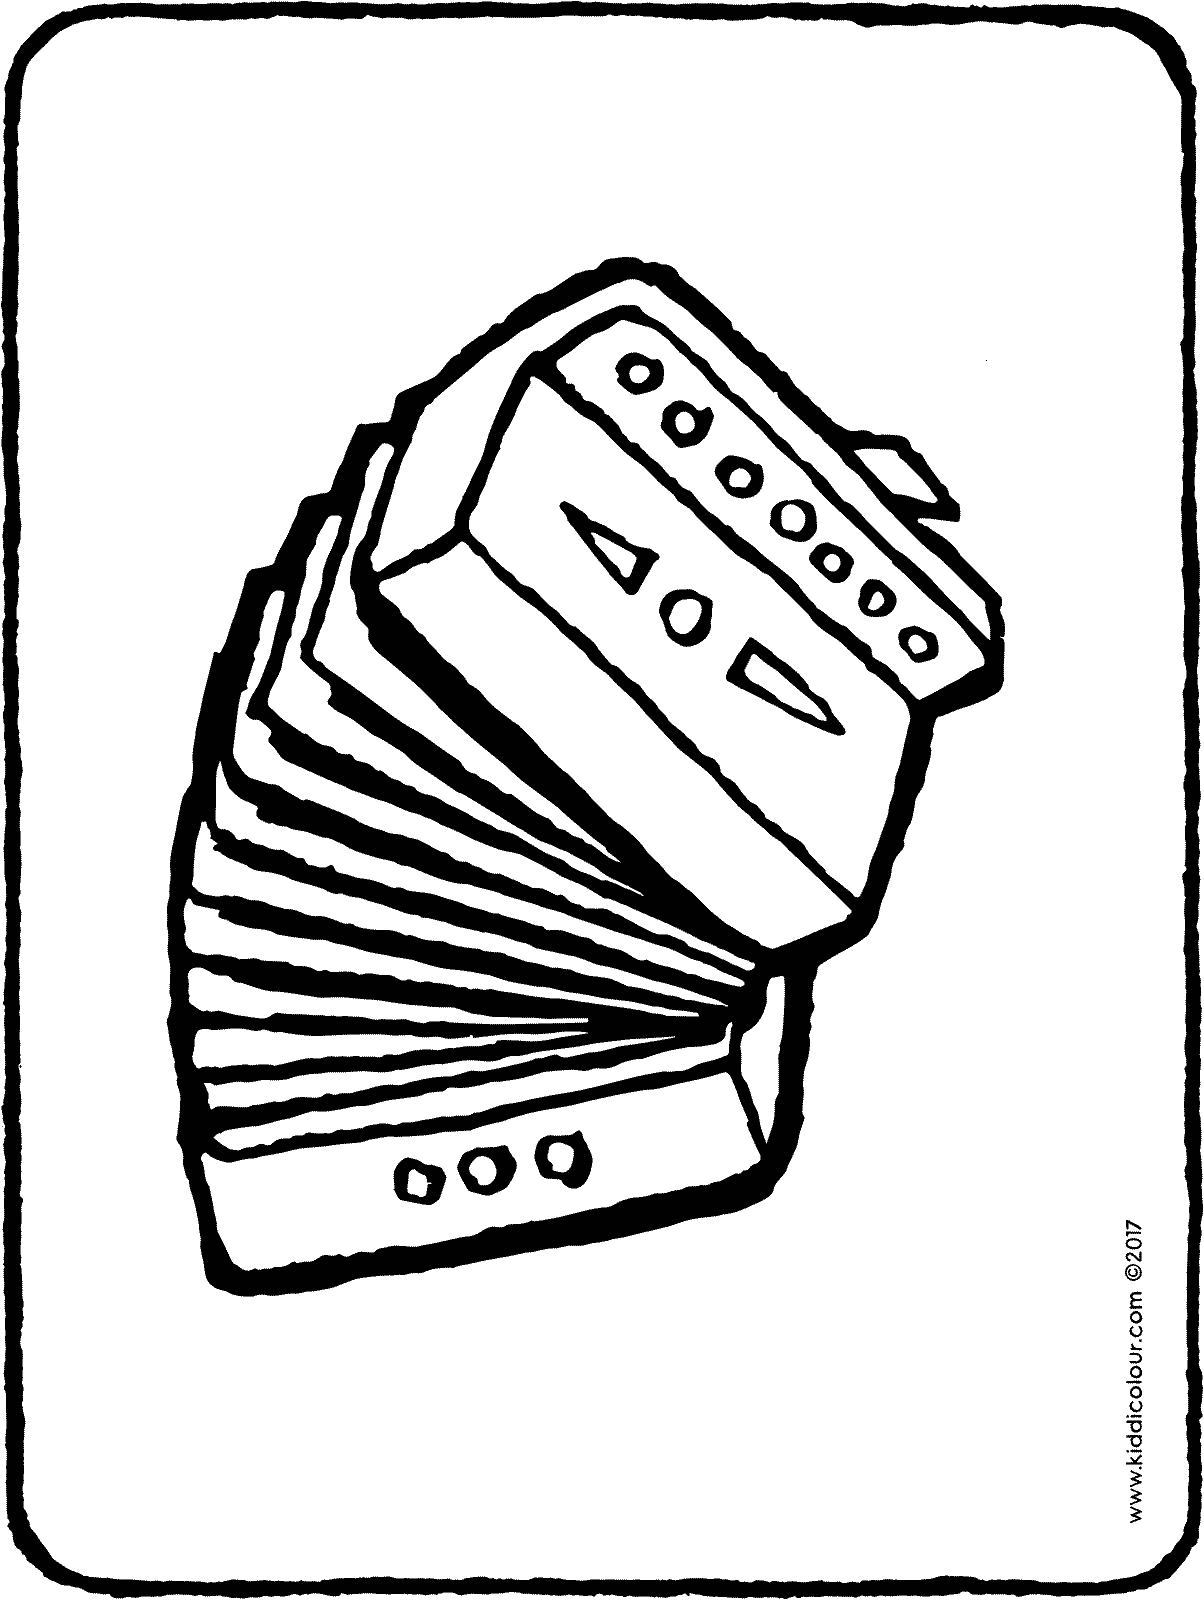 accordion colouring page page drawing picture 01H